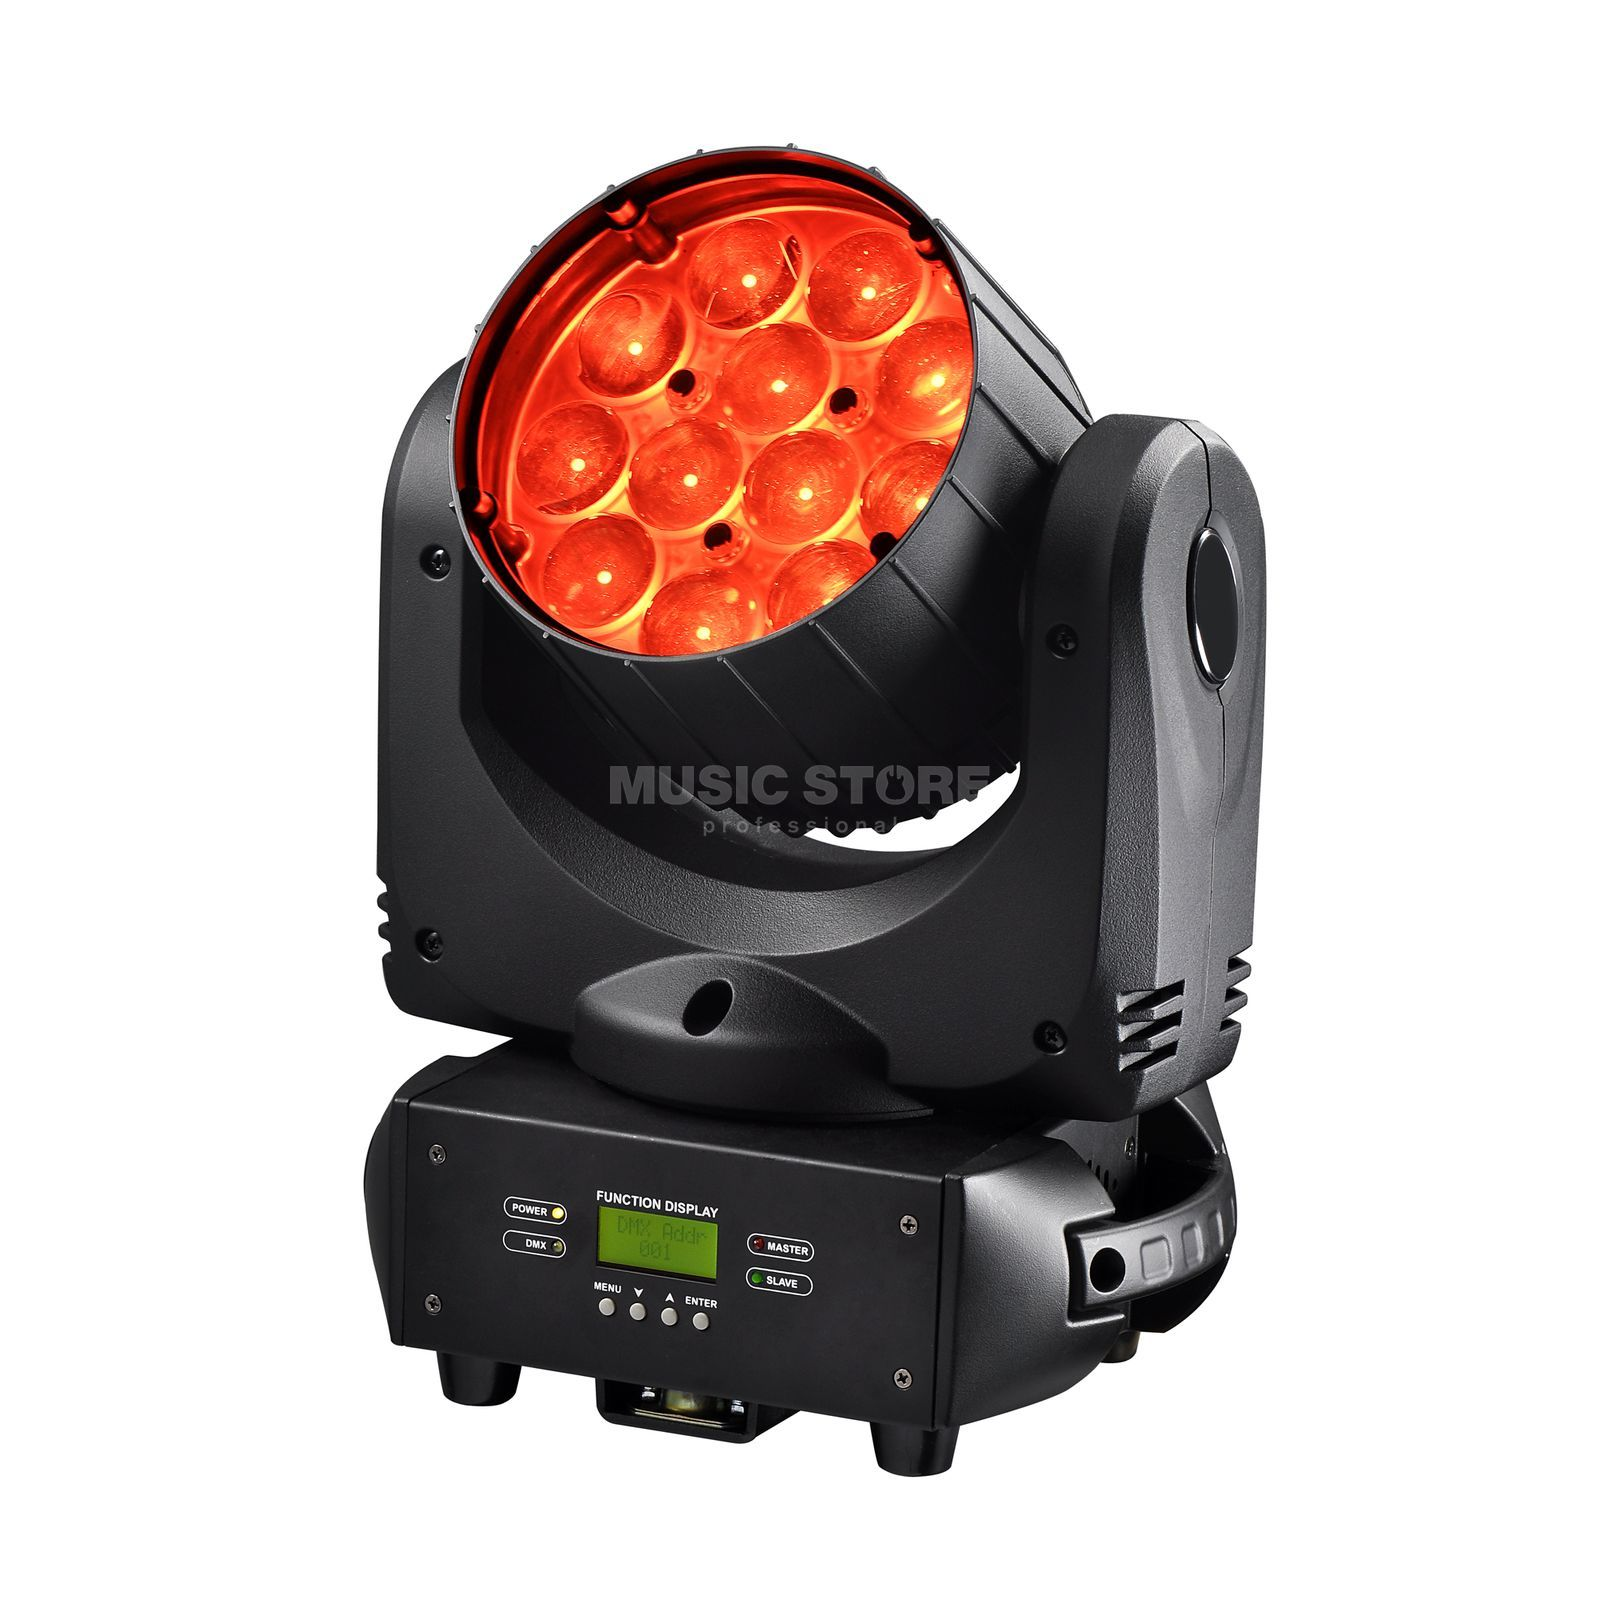 Ignition Contour Ambience Wash 12 Zoom 12 x 15W Osram RGBW LEDs Produktbild